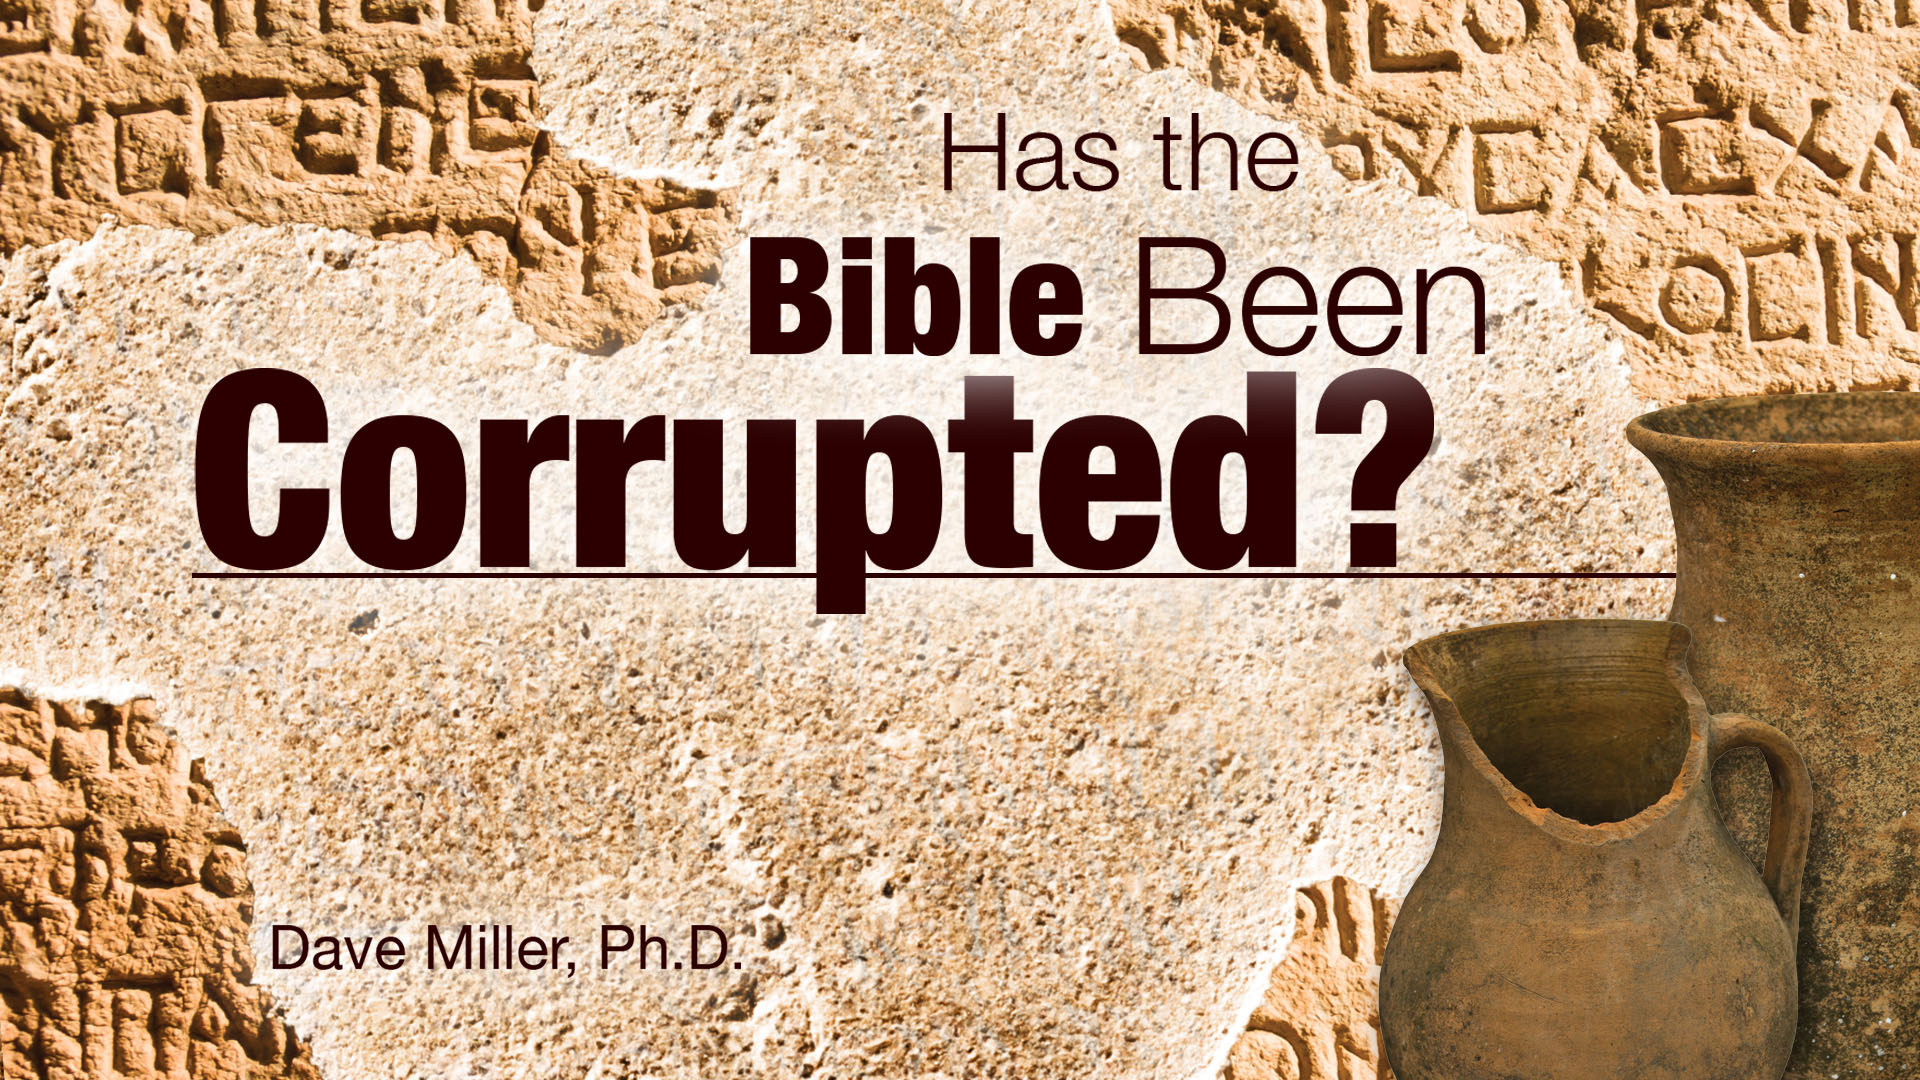 Has the Bible Been Corrupted?